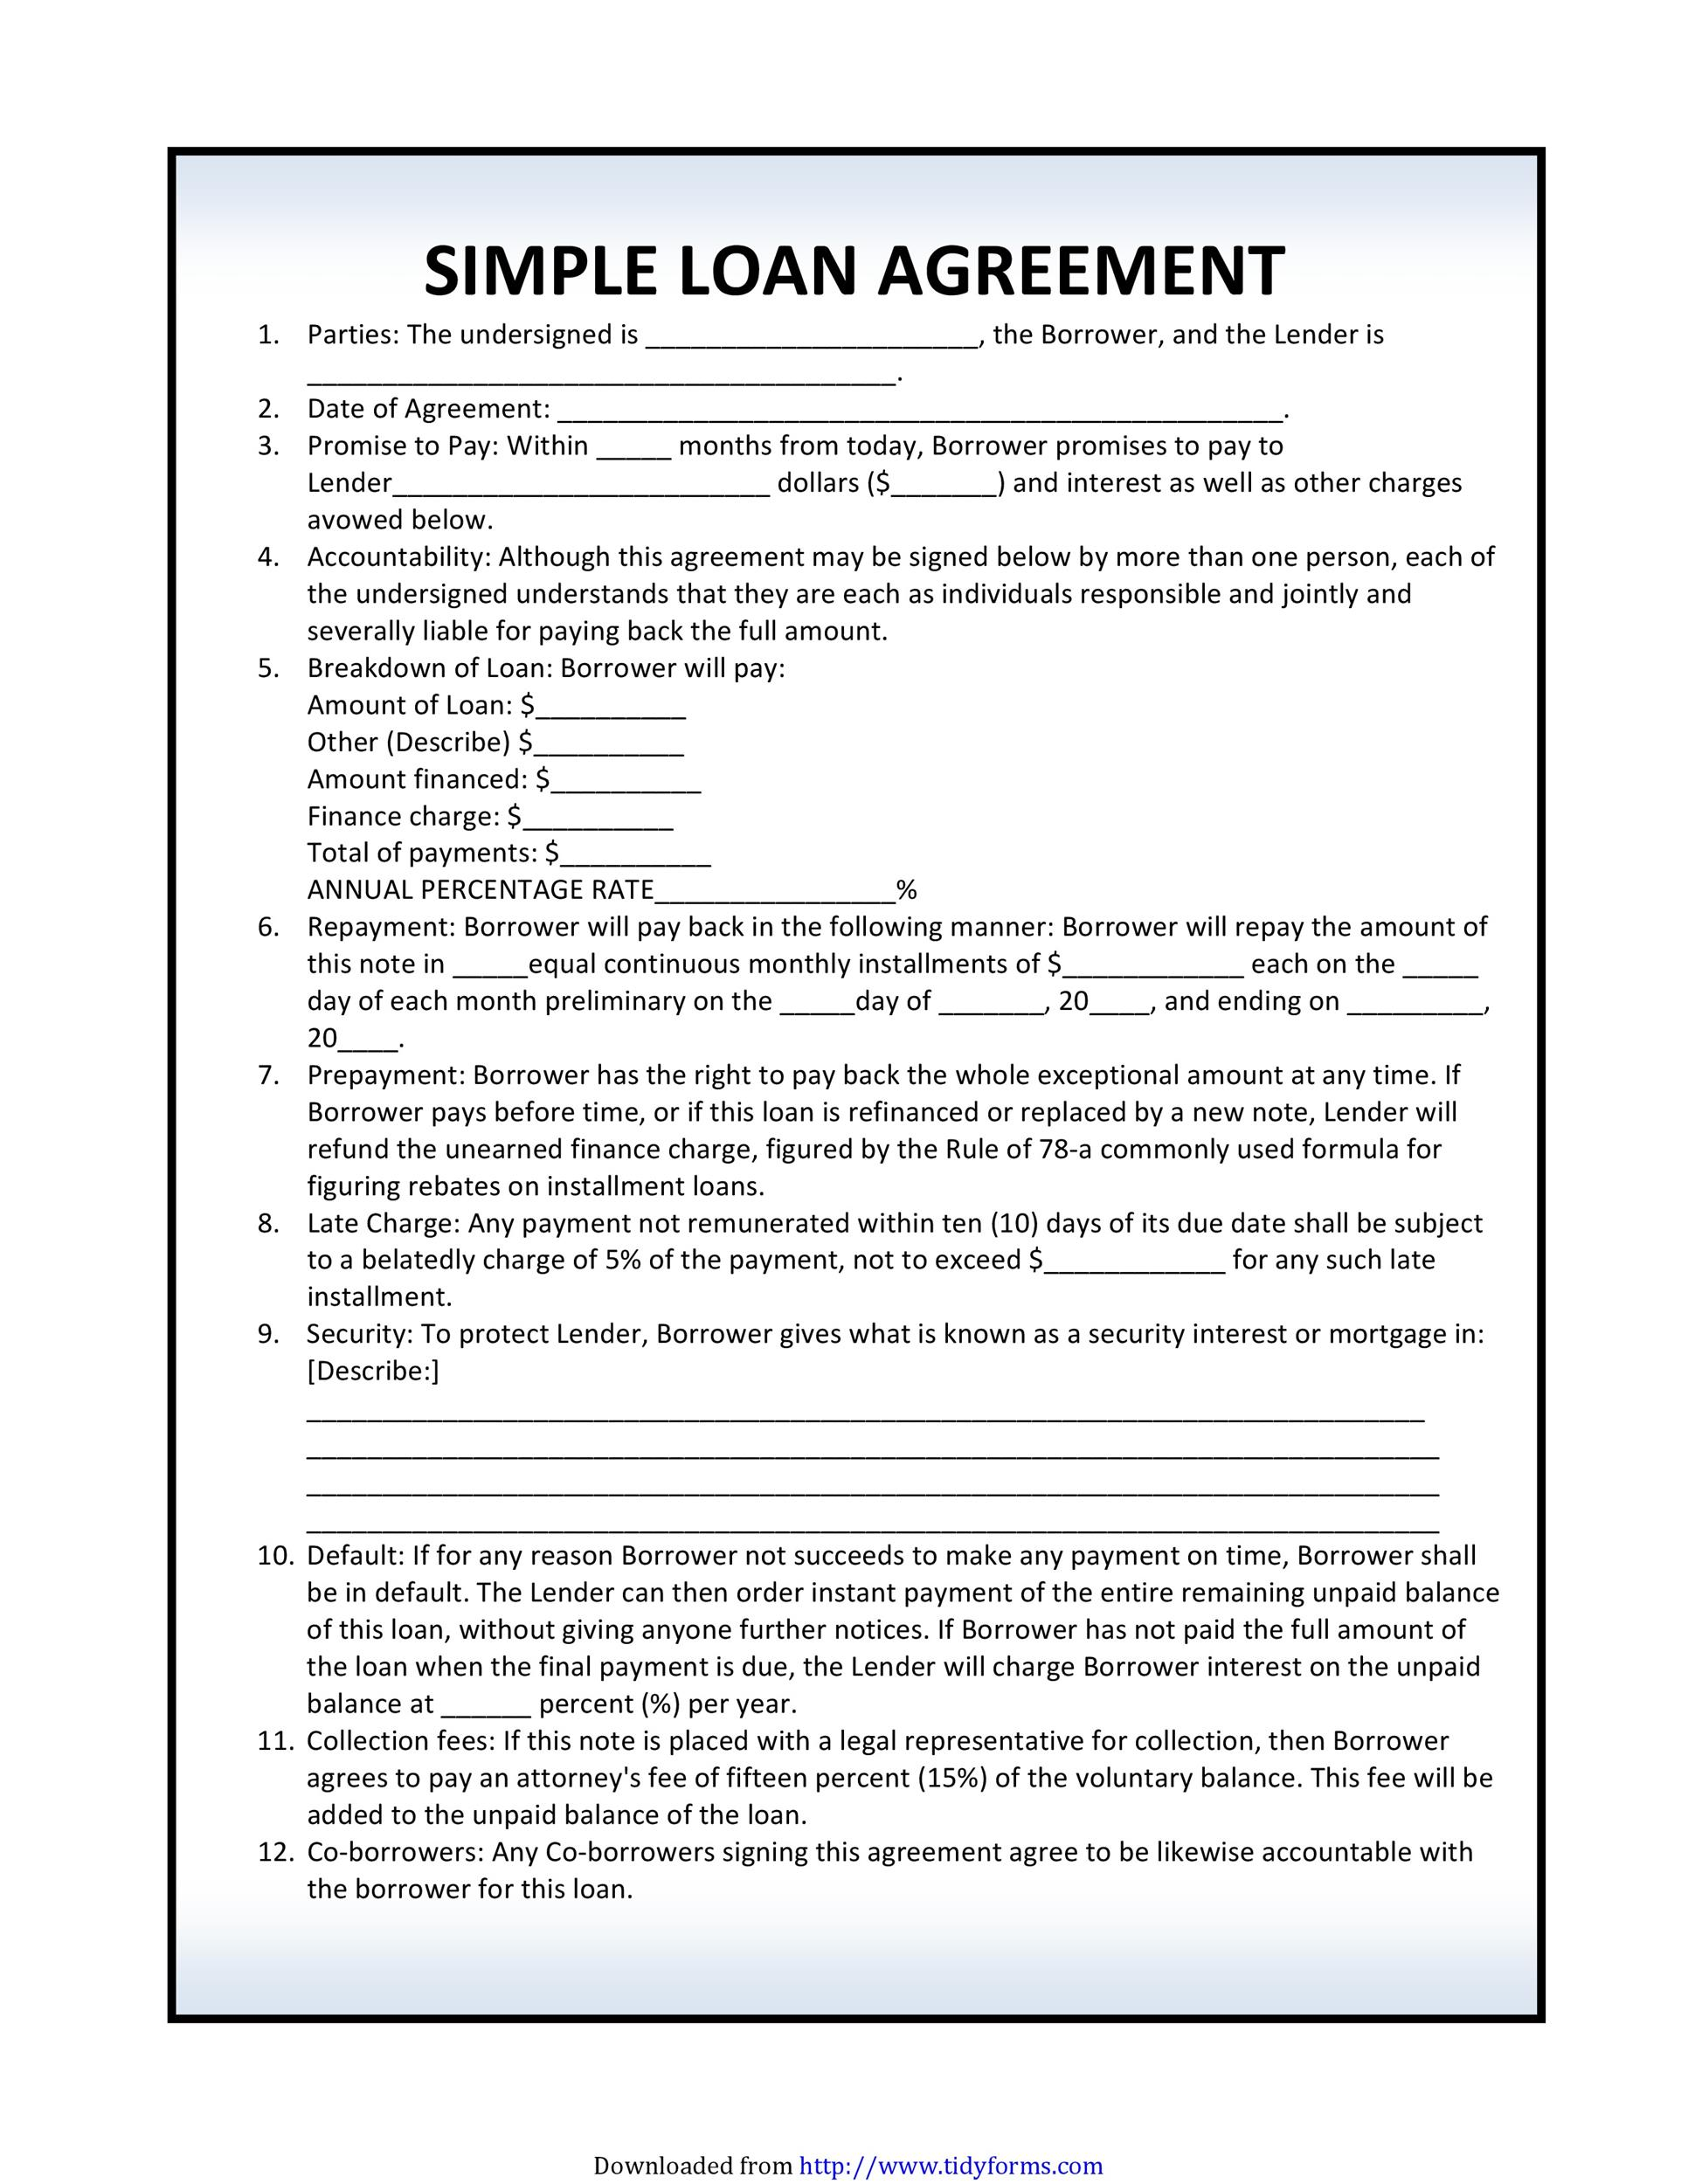 40+ Free Loan Agreement Templates [Word & PDF] - Template Lab